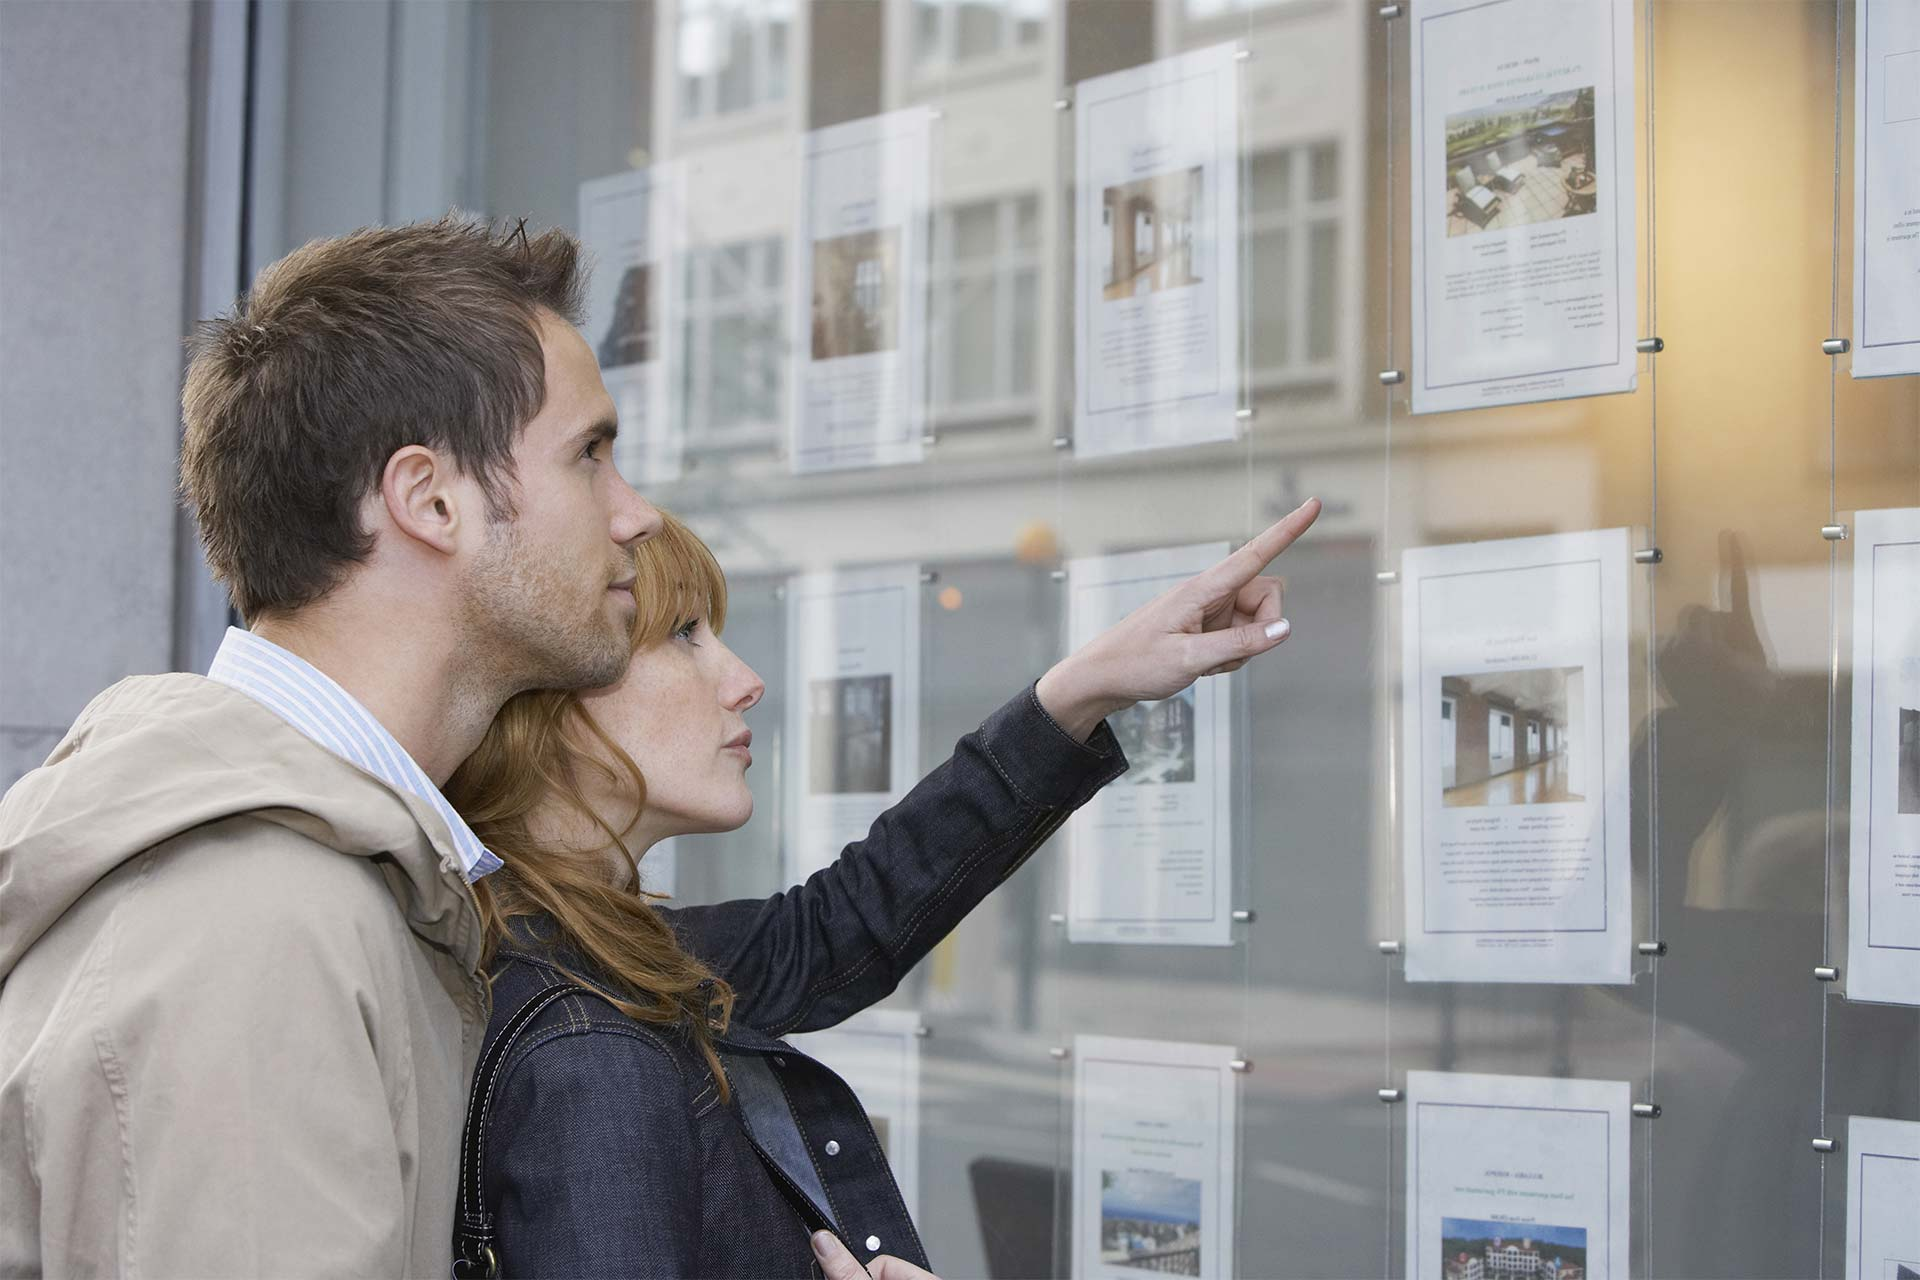 Doing your homework on property in a heated real estate market